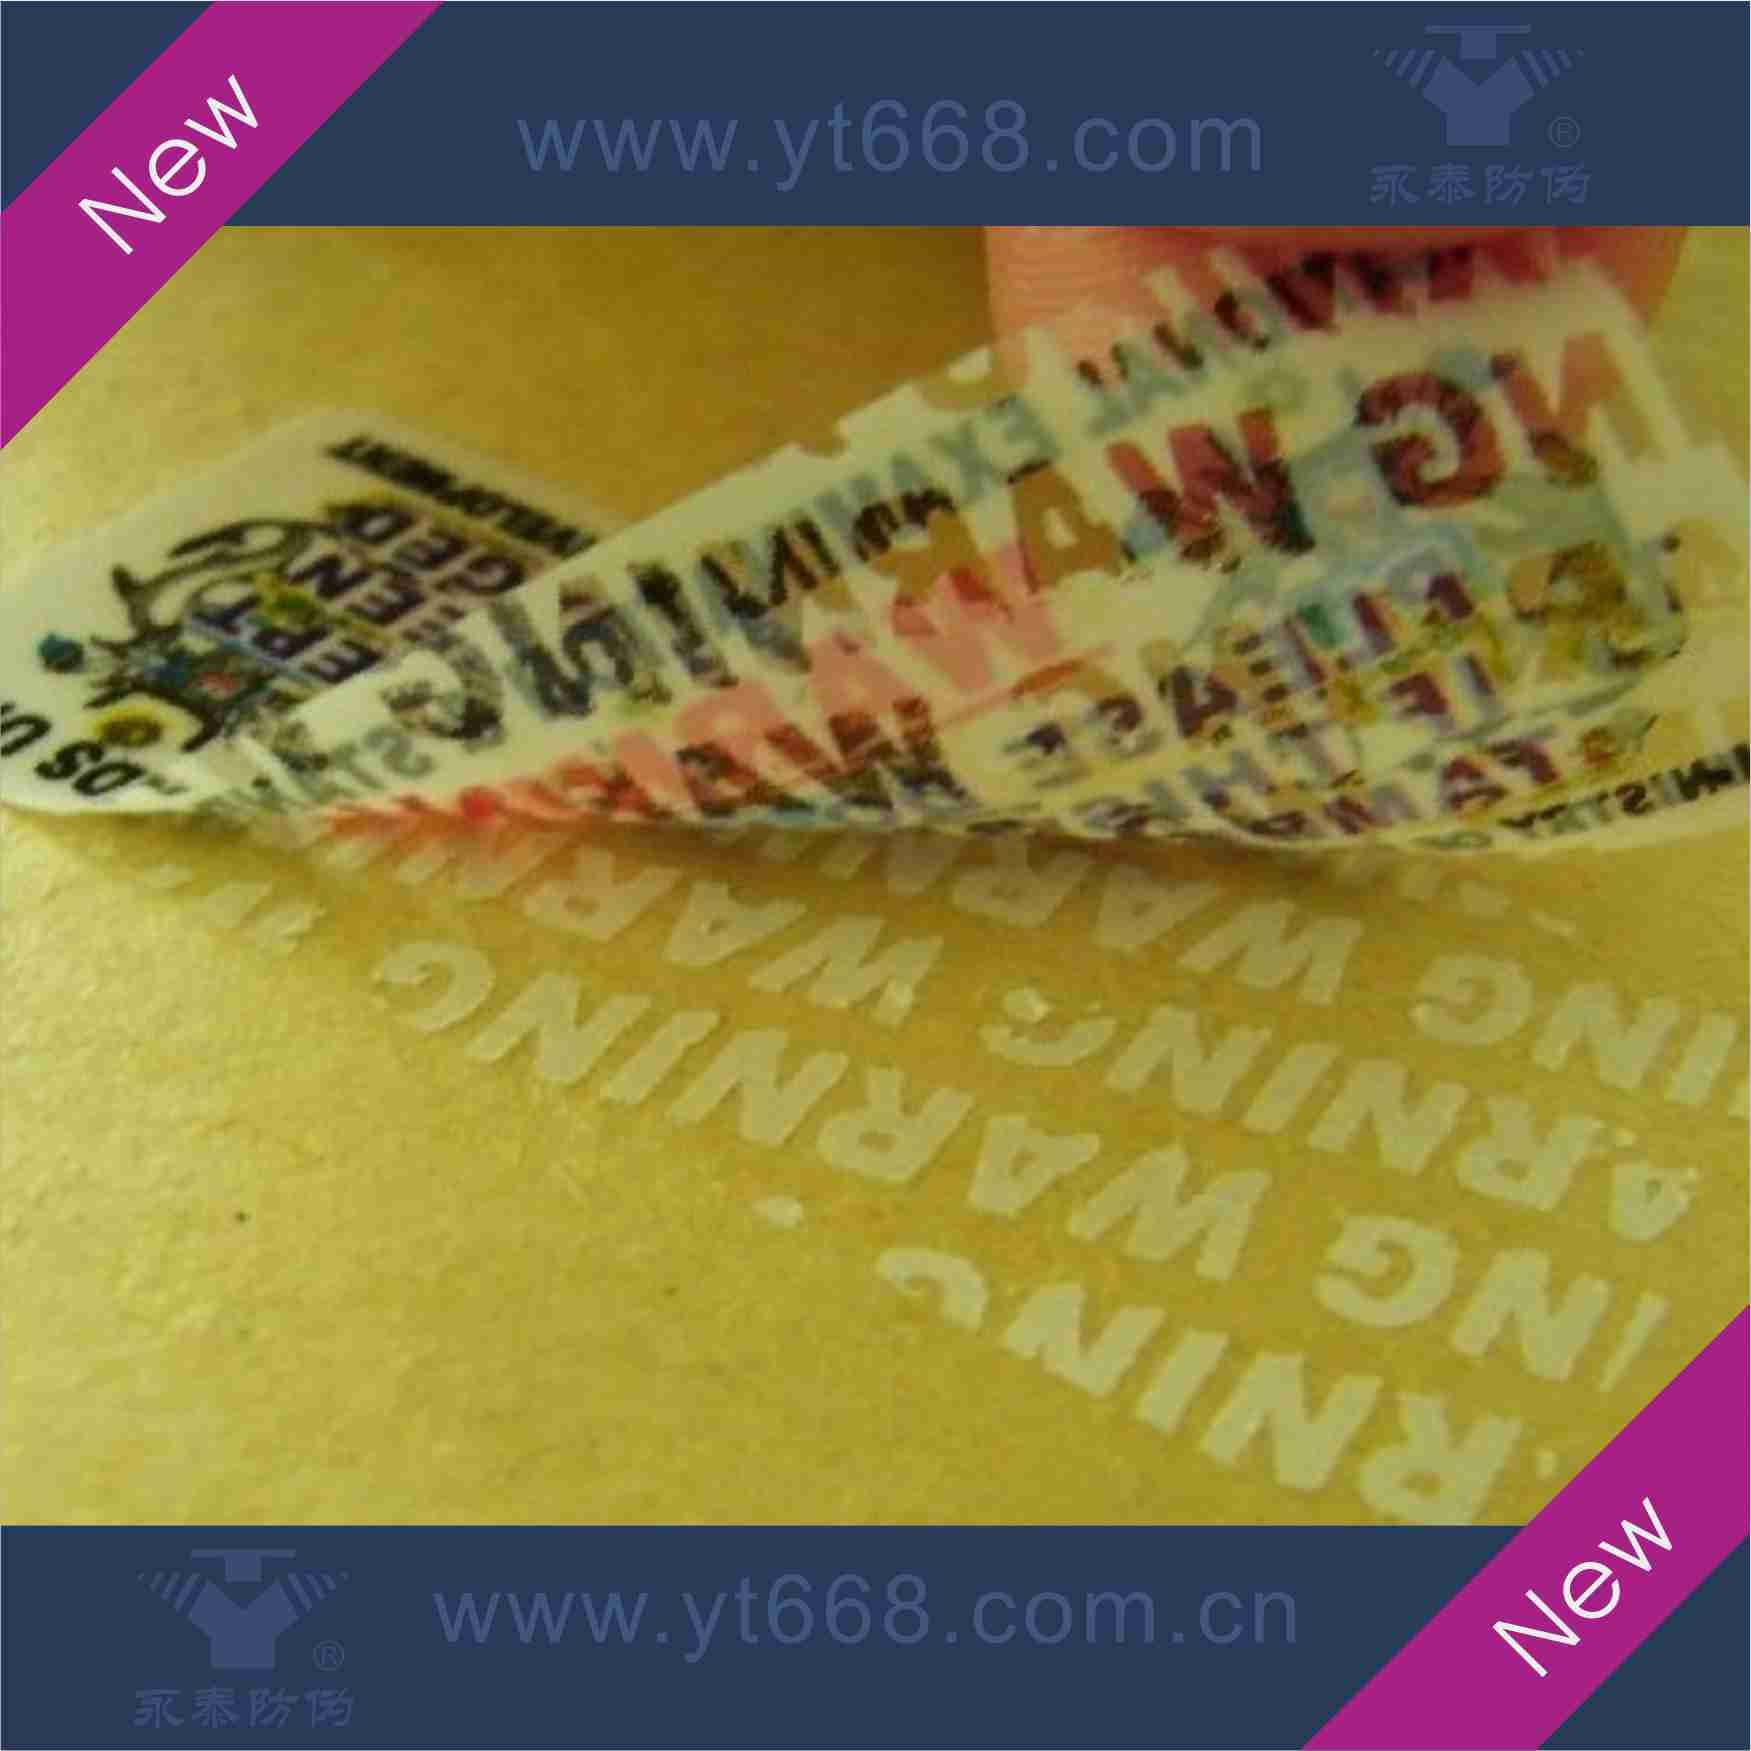 VOID tamper evident seal packing sticker